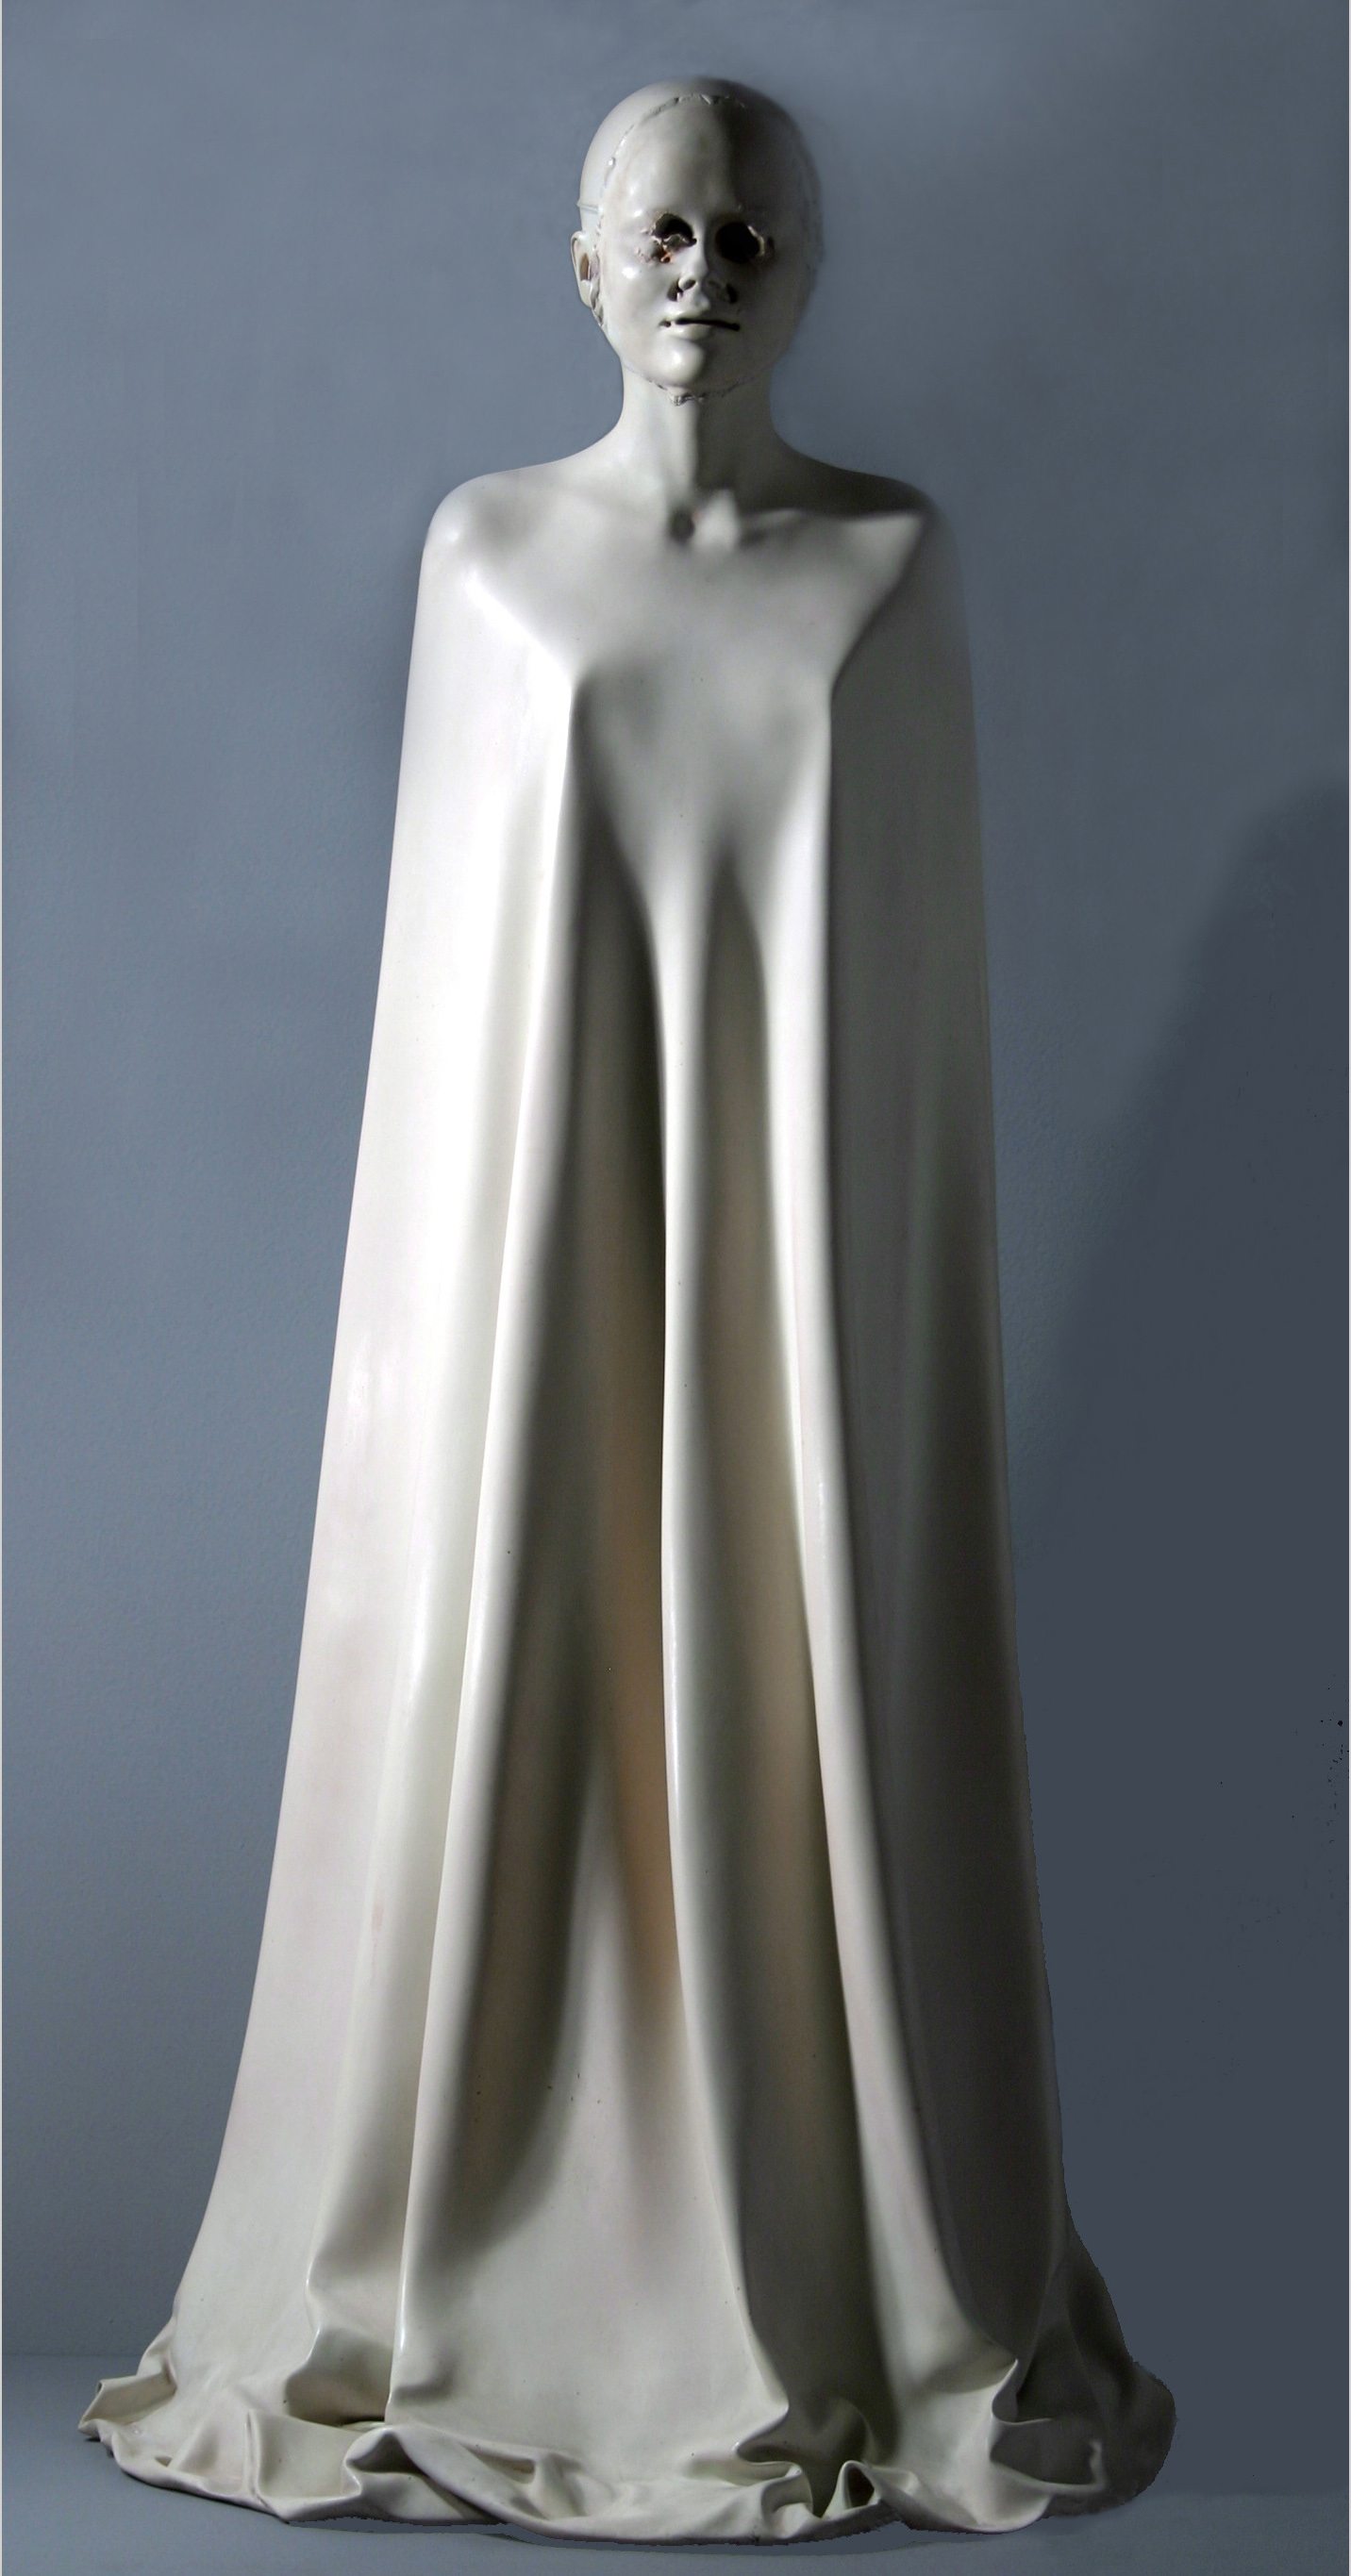 Arthur Kern: Persona, 63 inches tall, 1974